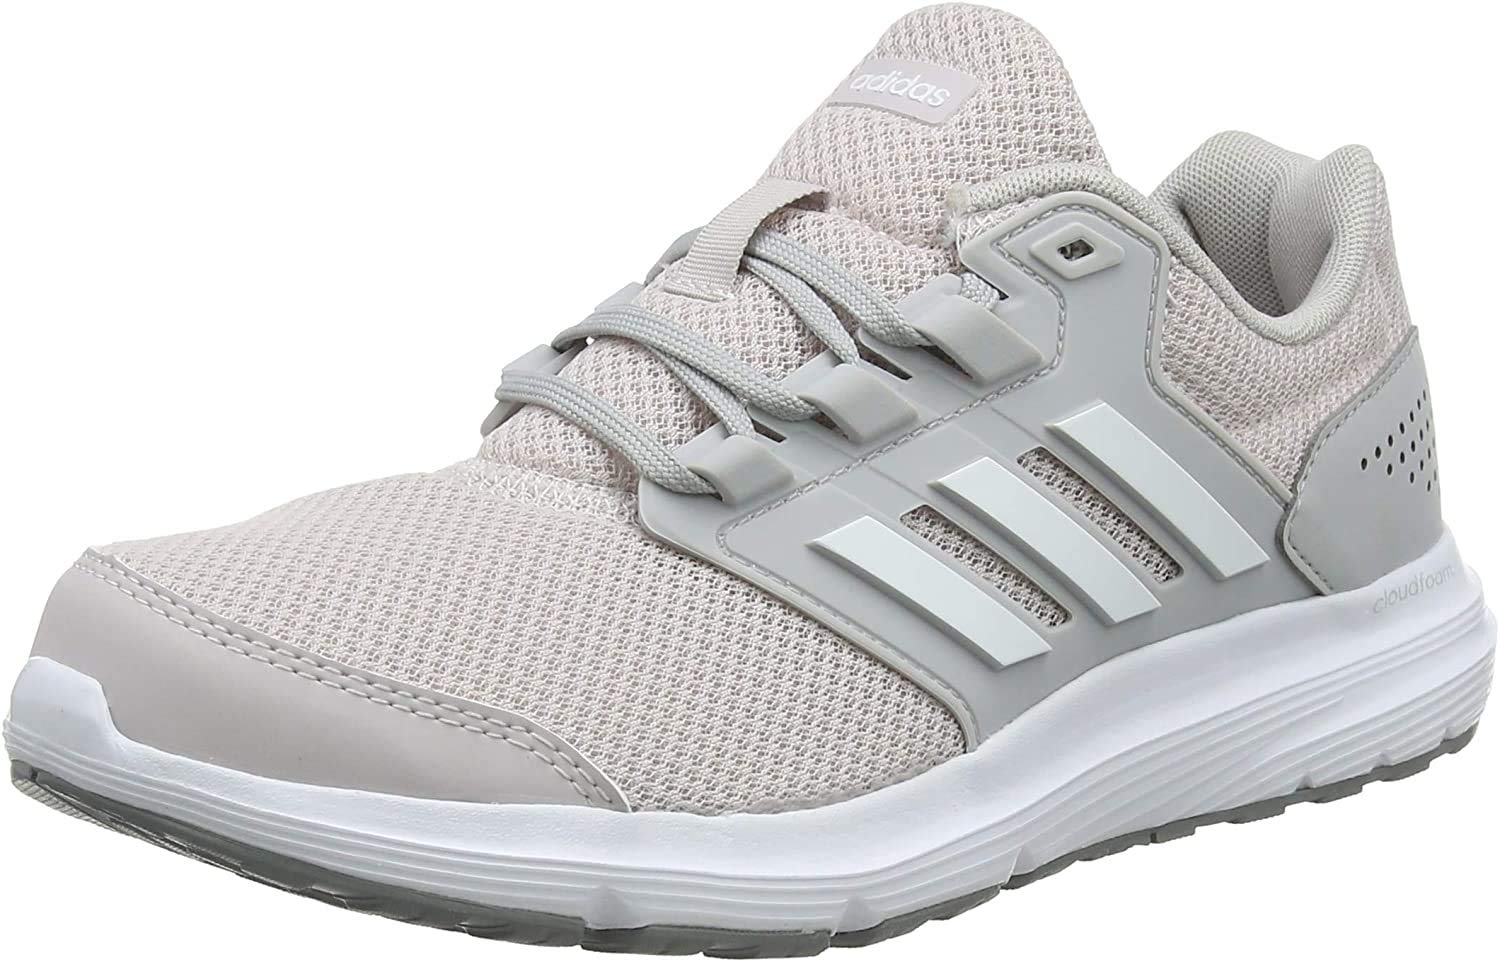 adidas Galaxy 4, Zapatillas de Running para Mujer, Gris (Grey/Footwear White/Ice Purple 0), 45 1/3 EU: Amazon.es: Zapatos y complementos